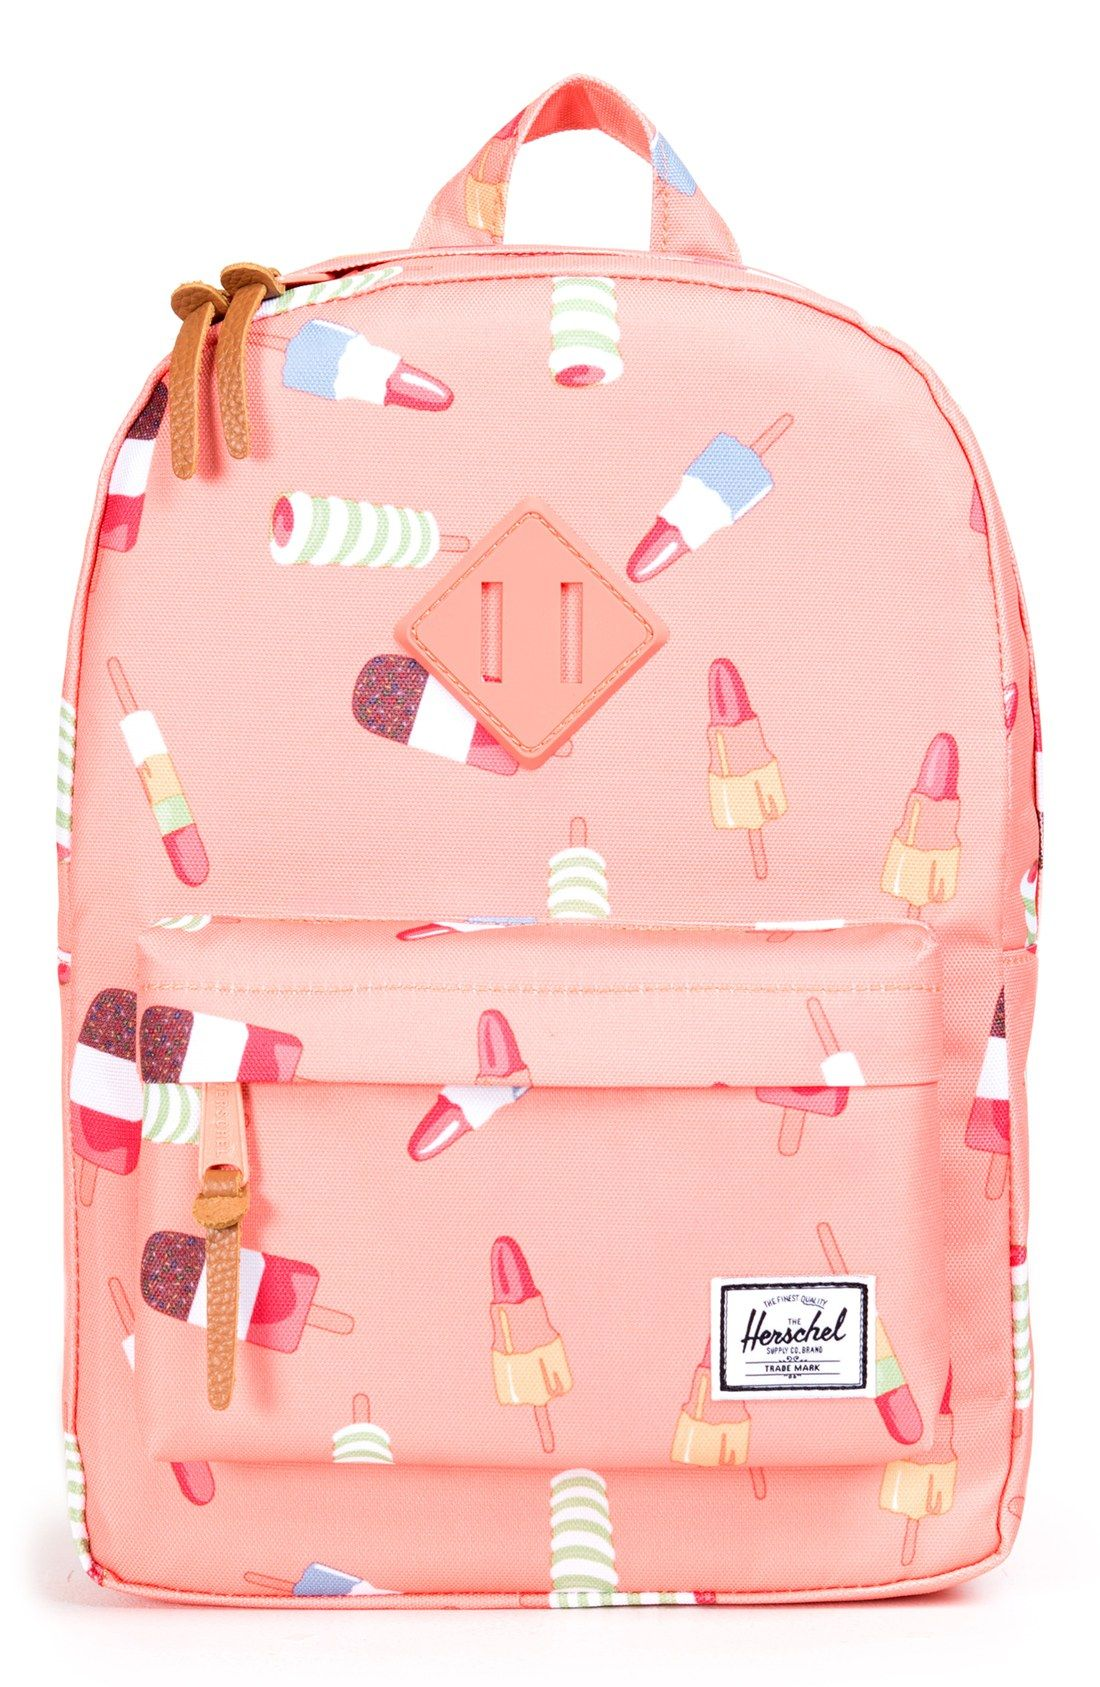 56ef6bc90f5b Every little girl will love this cute pink backpack in a fun and summery  Popsicle print.